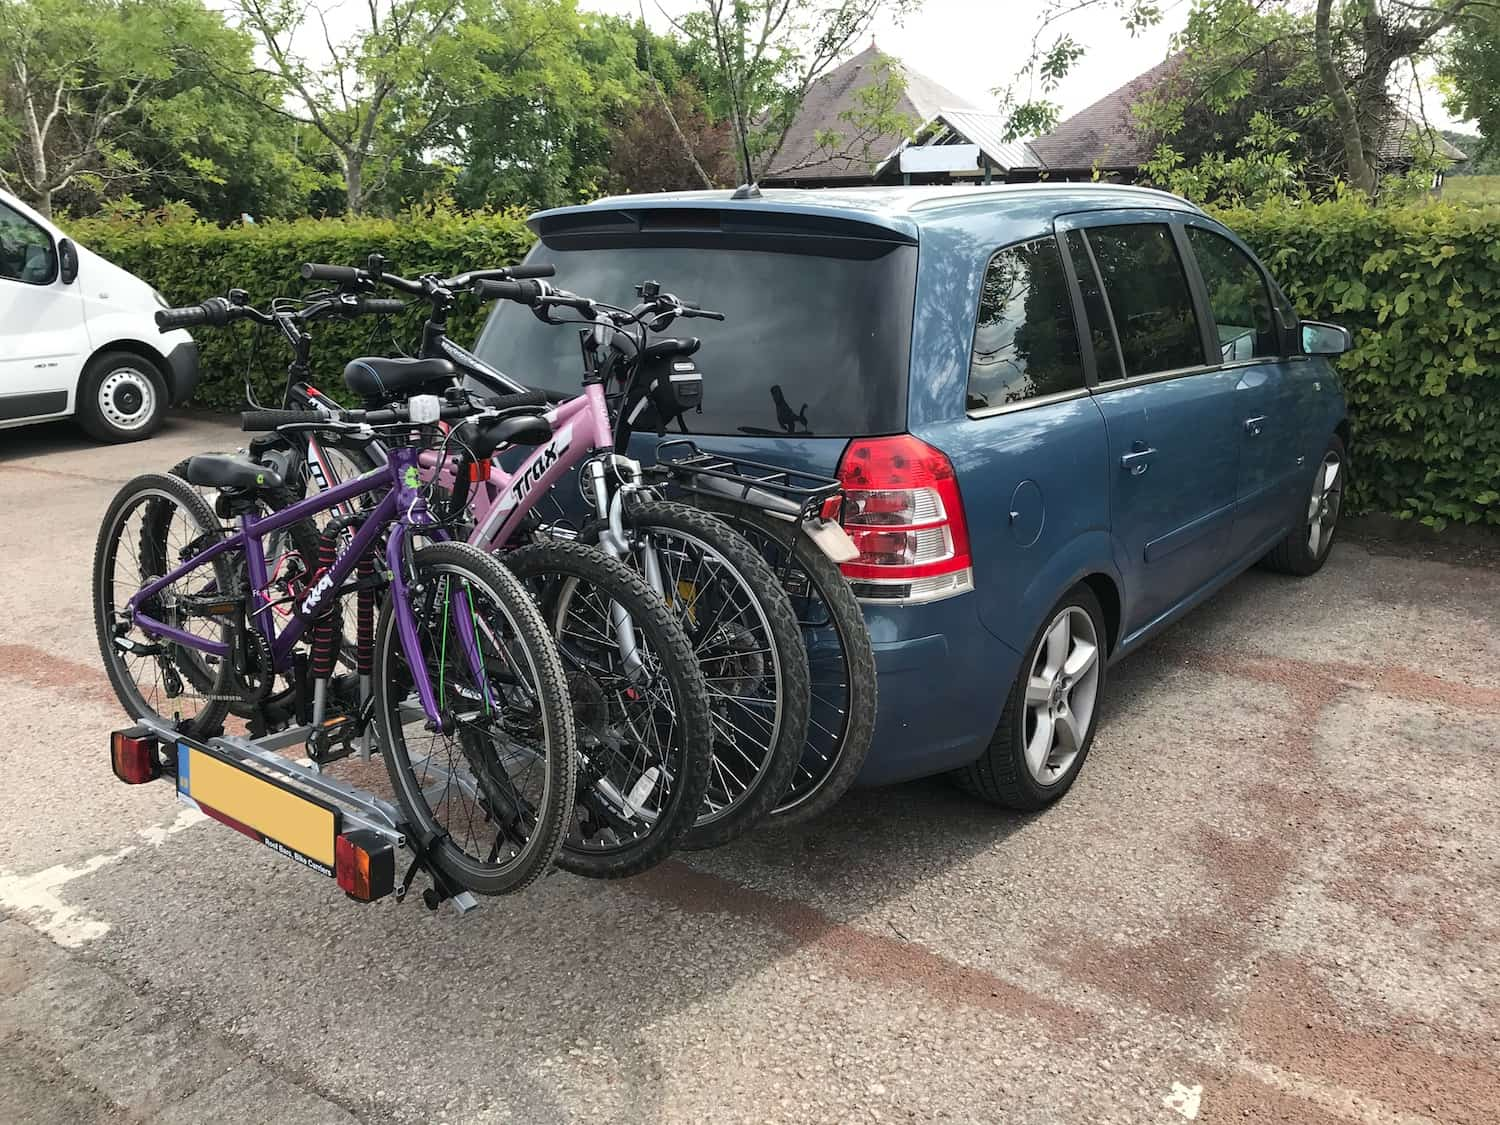 Transport Bike By Car - Towball Bicycle Rack Loaded